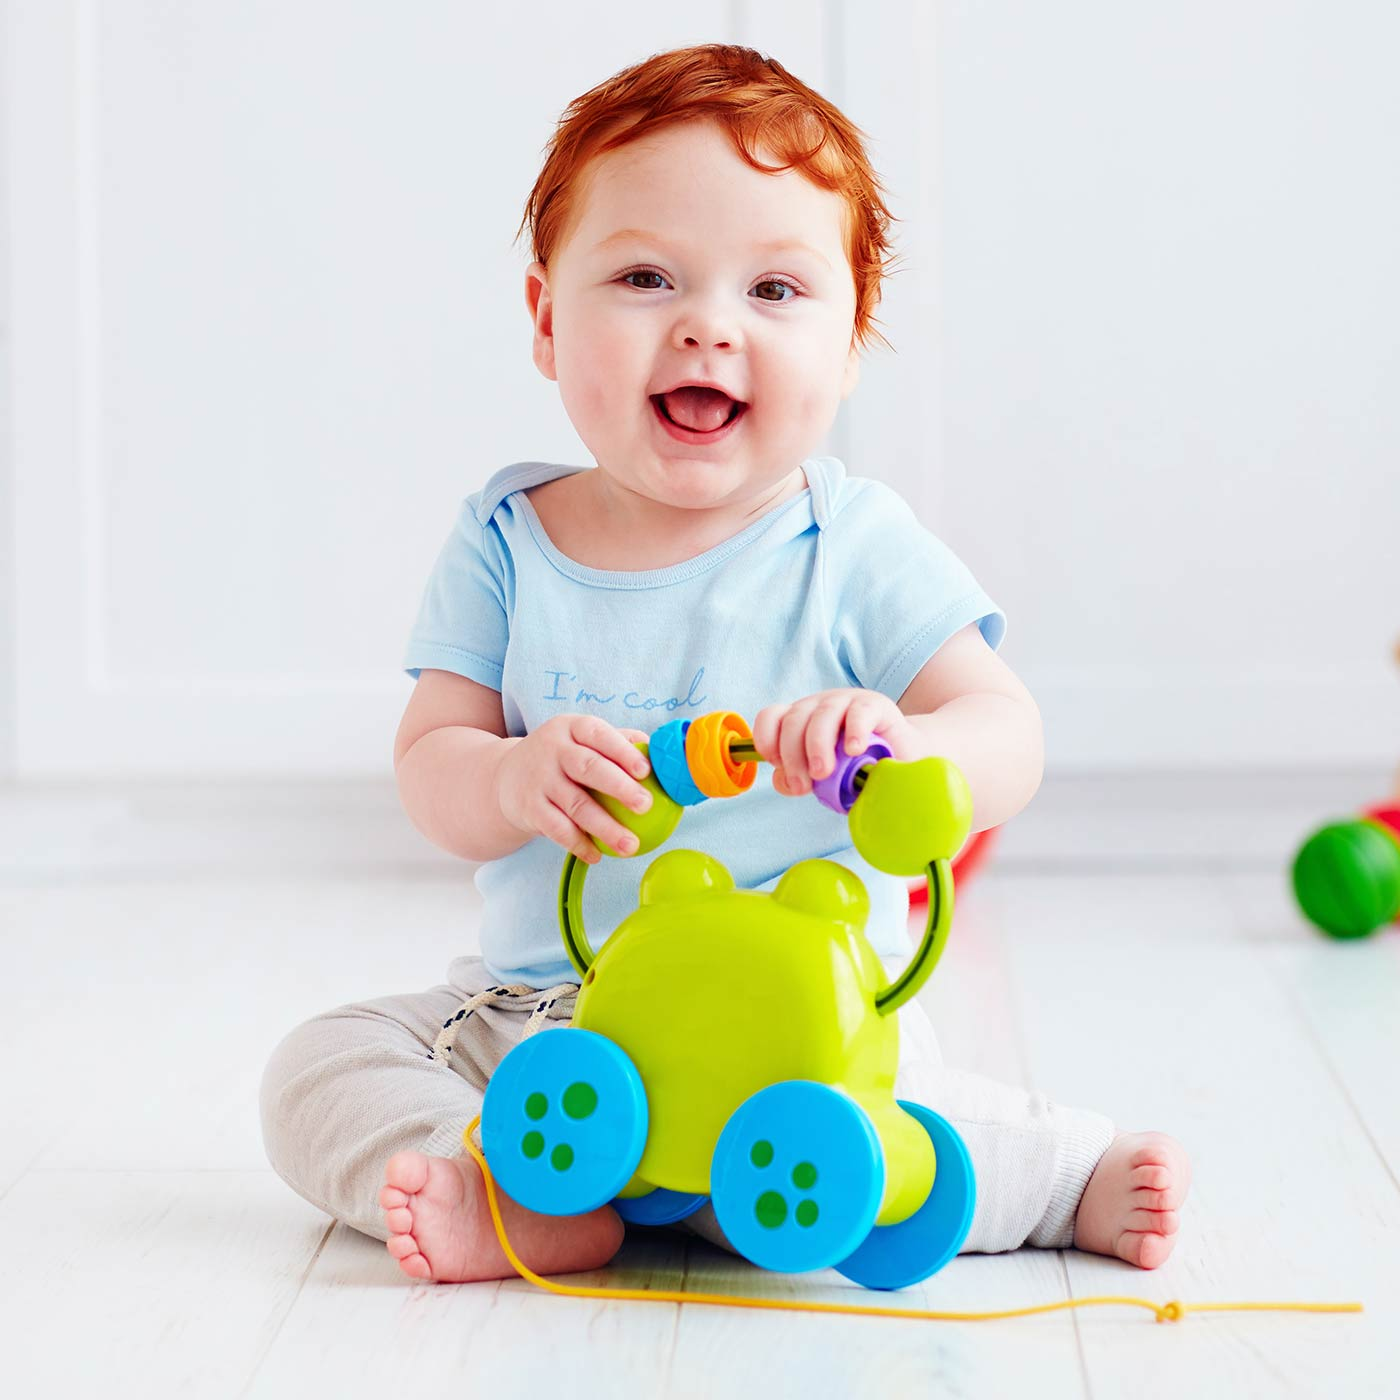 Toddler boy playing with a toy: playful activities for 1 year olds